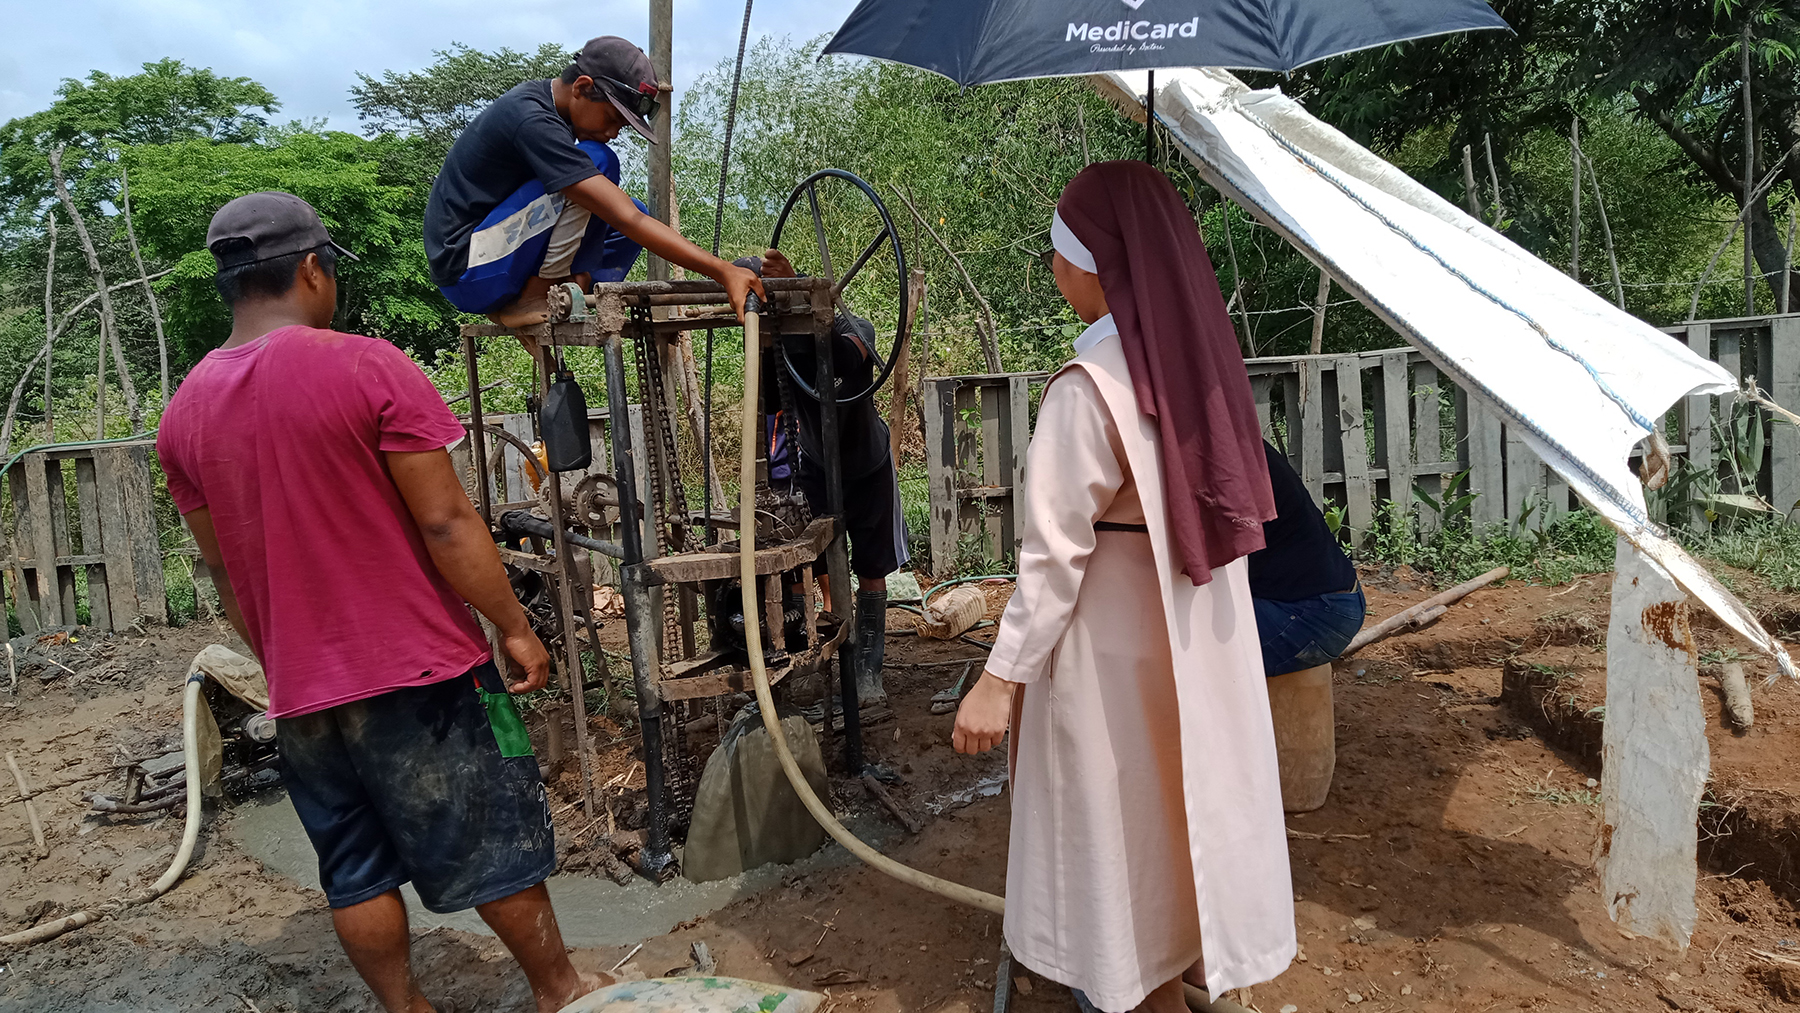 Community members watch a newly installed water pump at work. (Photo courtesy of FLDP GeEx Development Community Foundation)